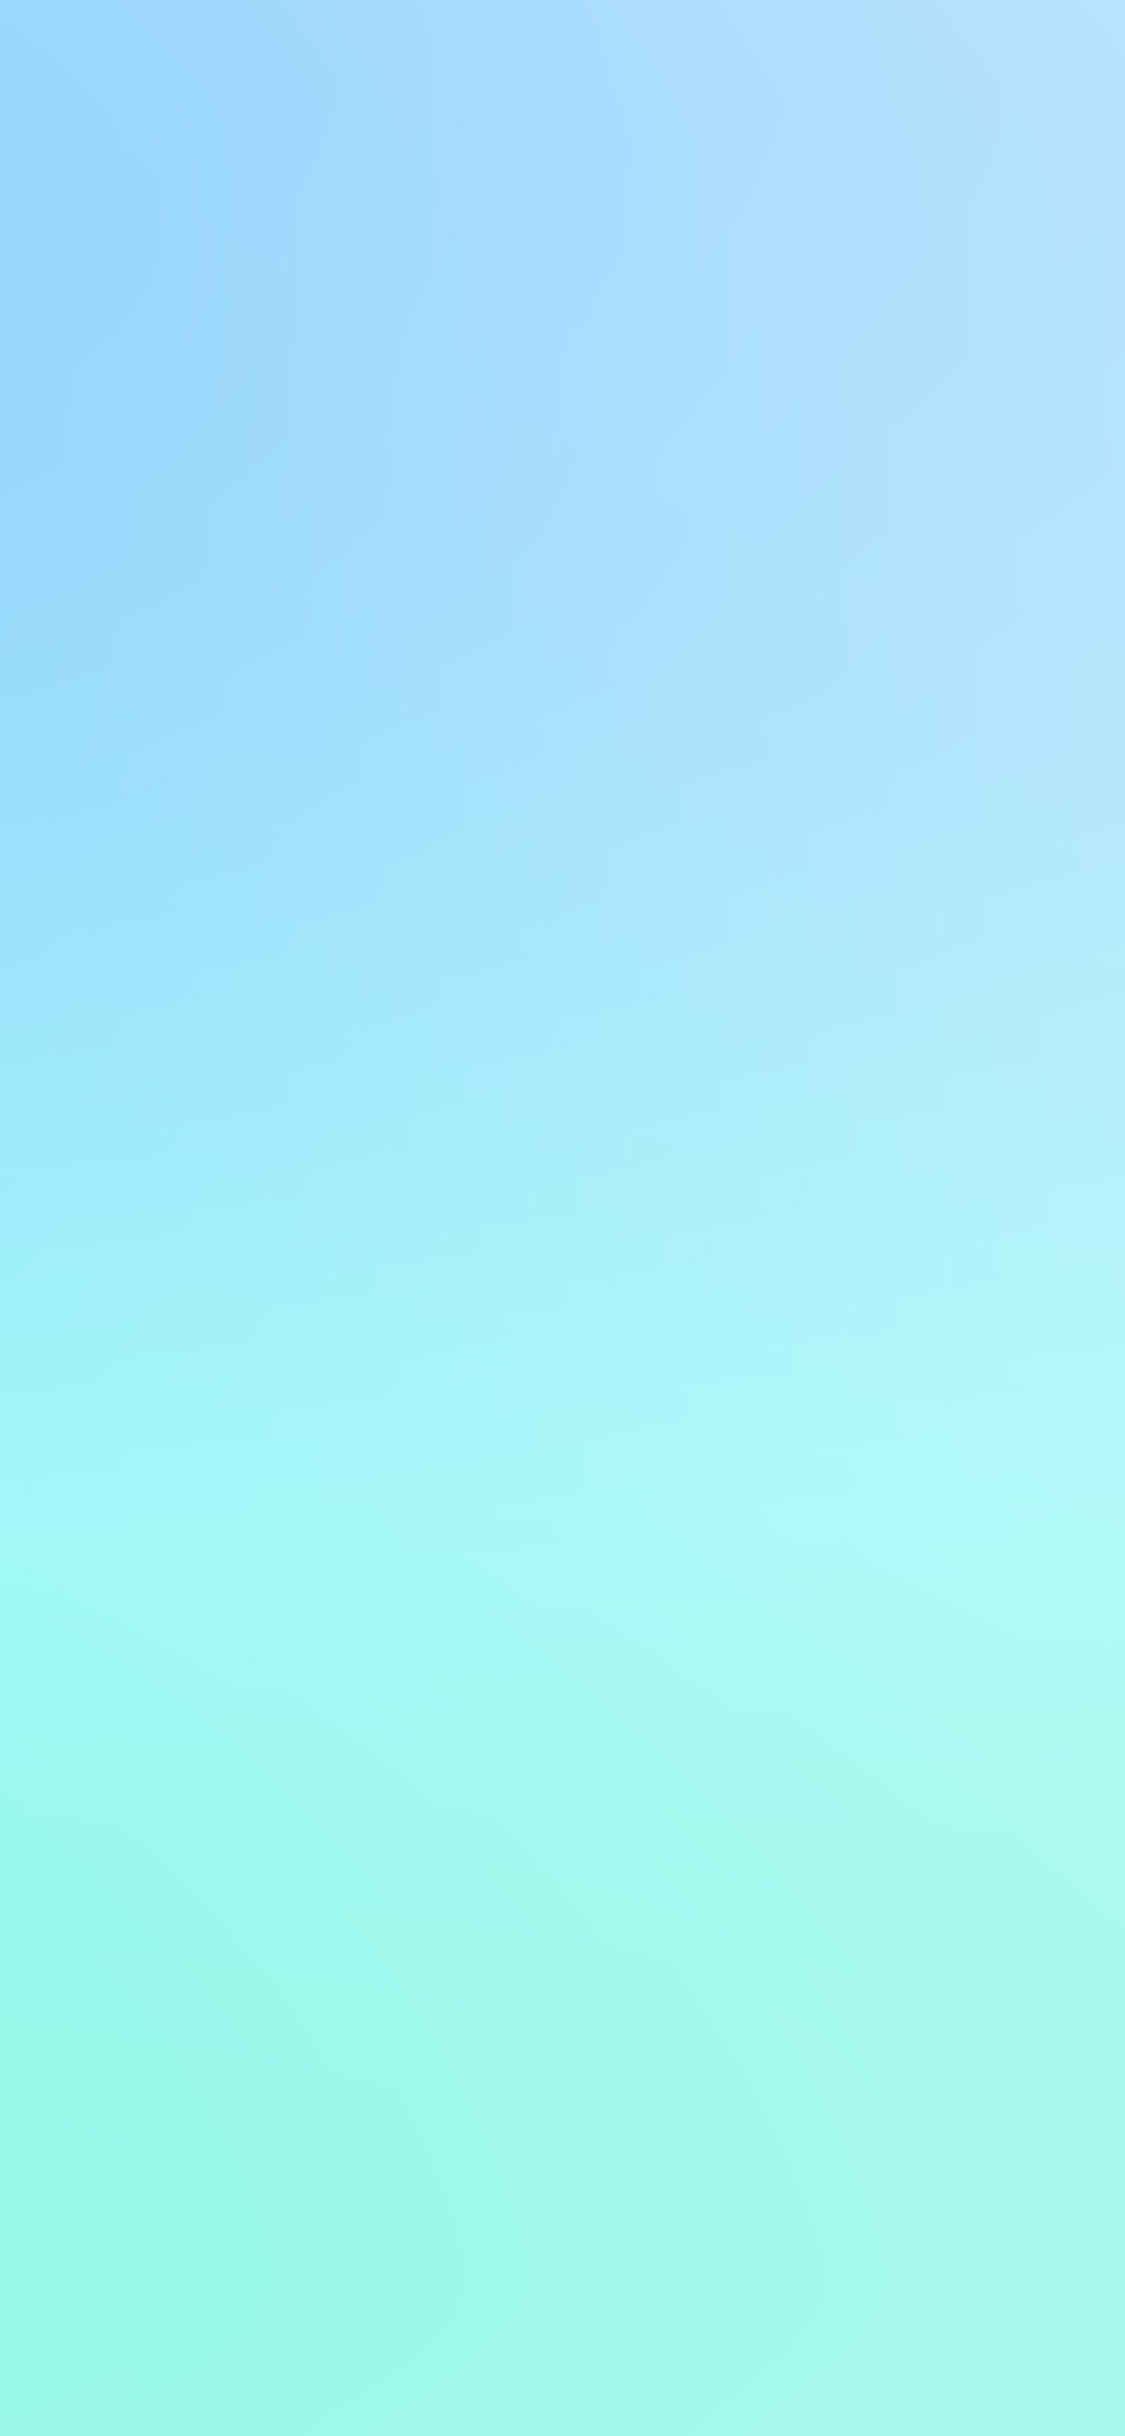 iPhonexpapers.com-Apple-iPhone-wallpaper-sm58-cool-pastel-blur-gradation-blue